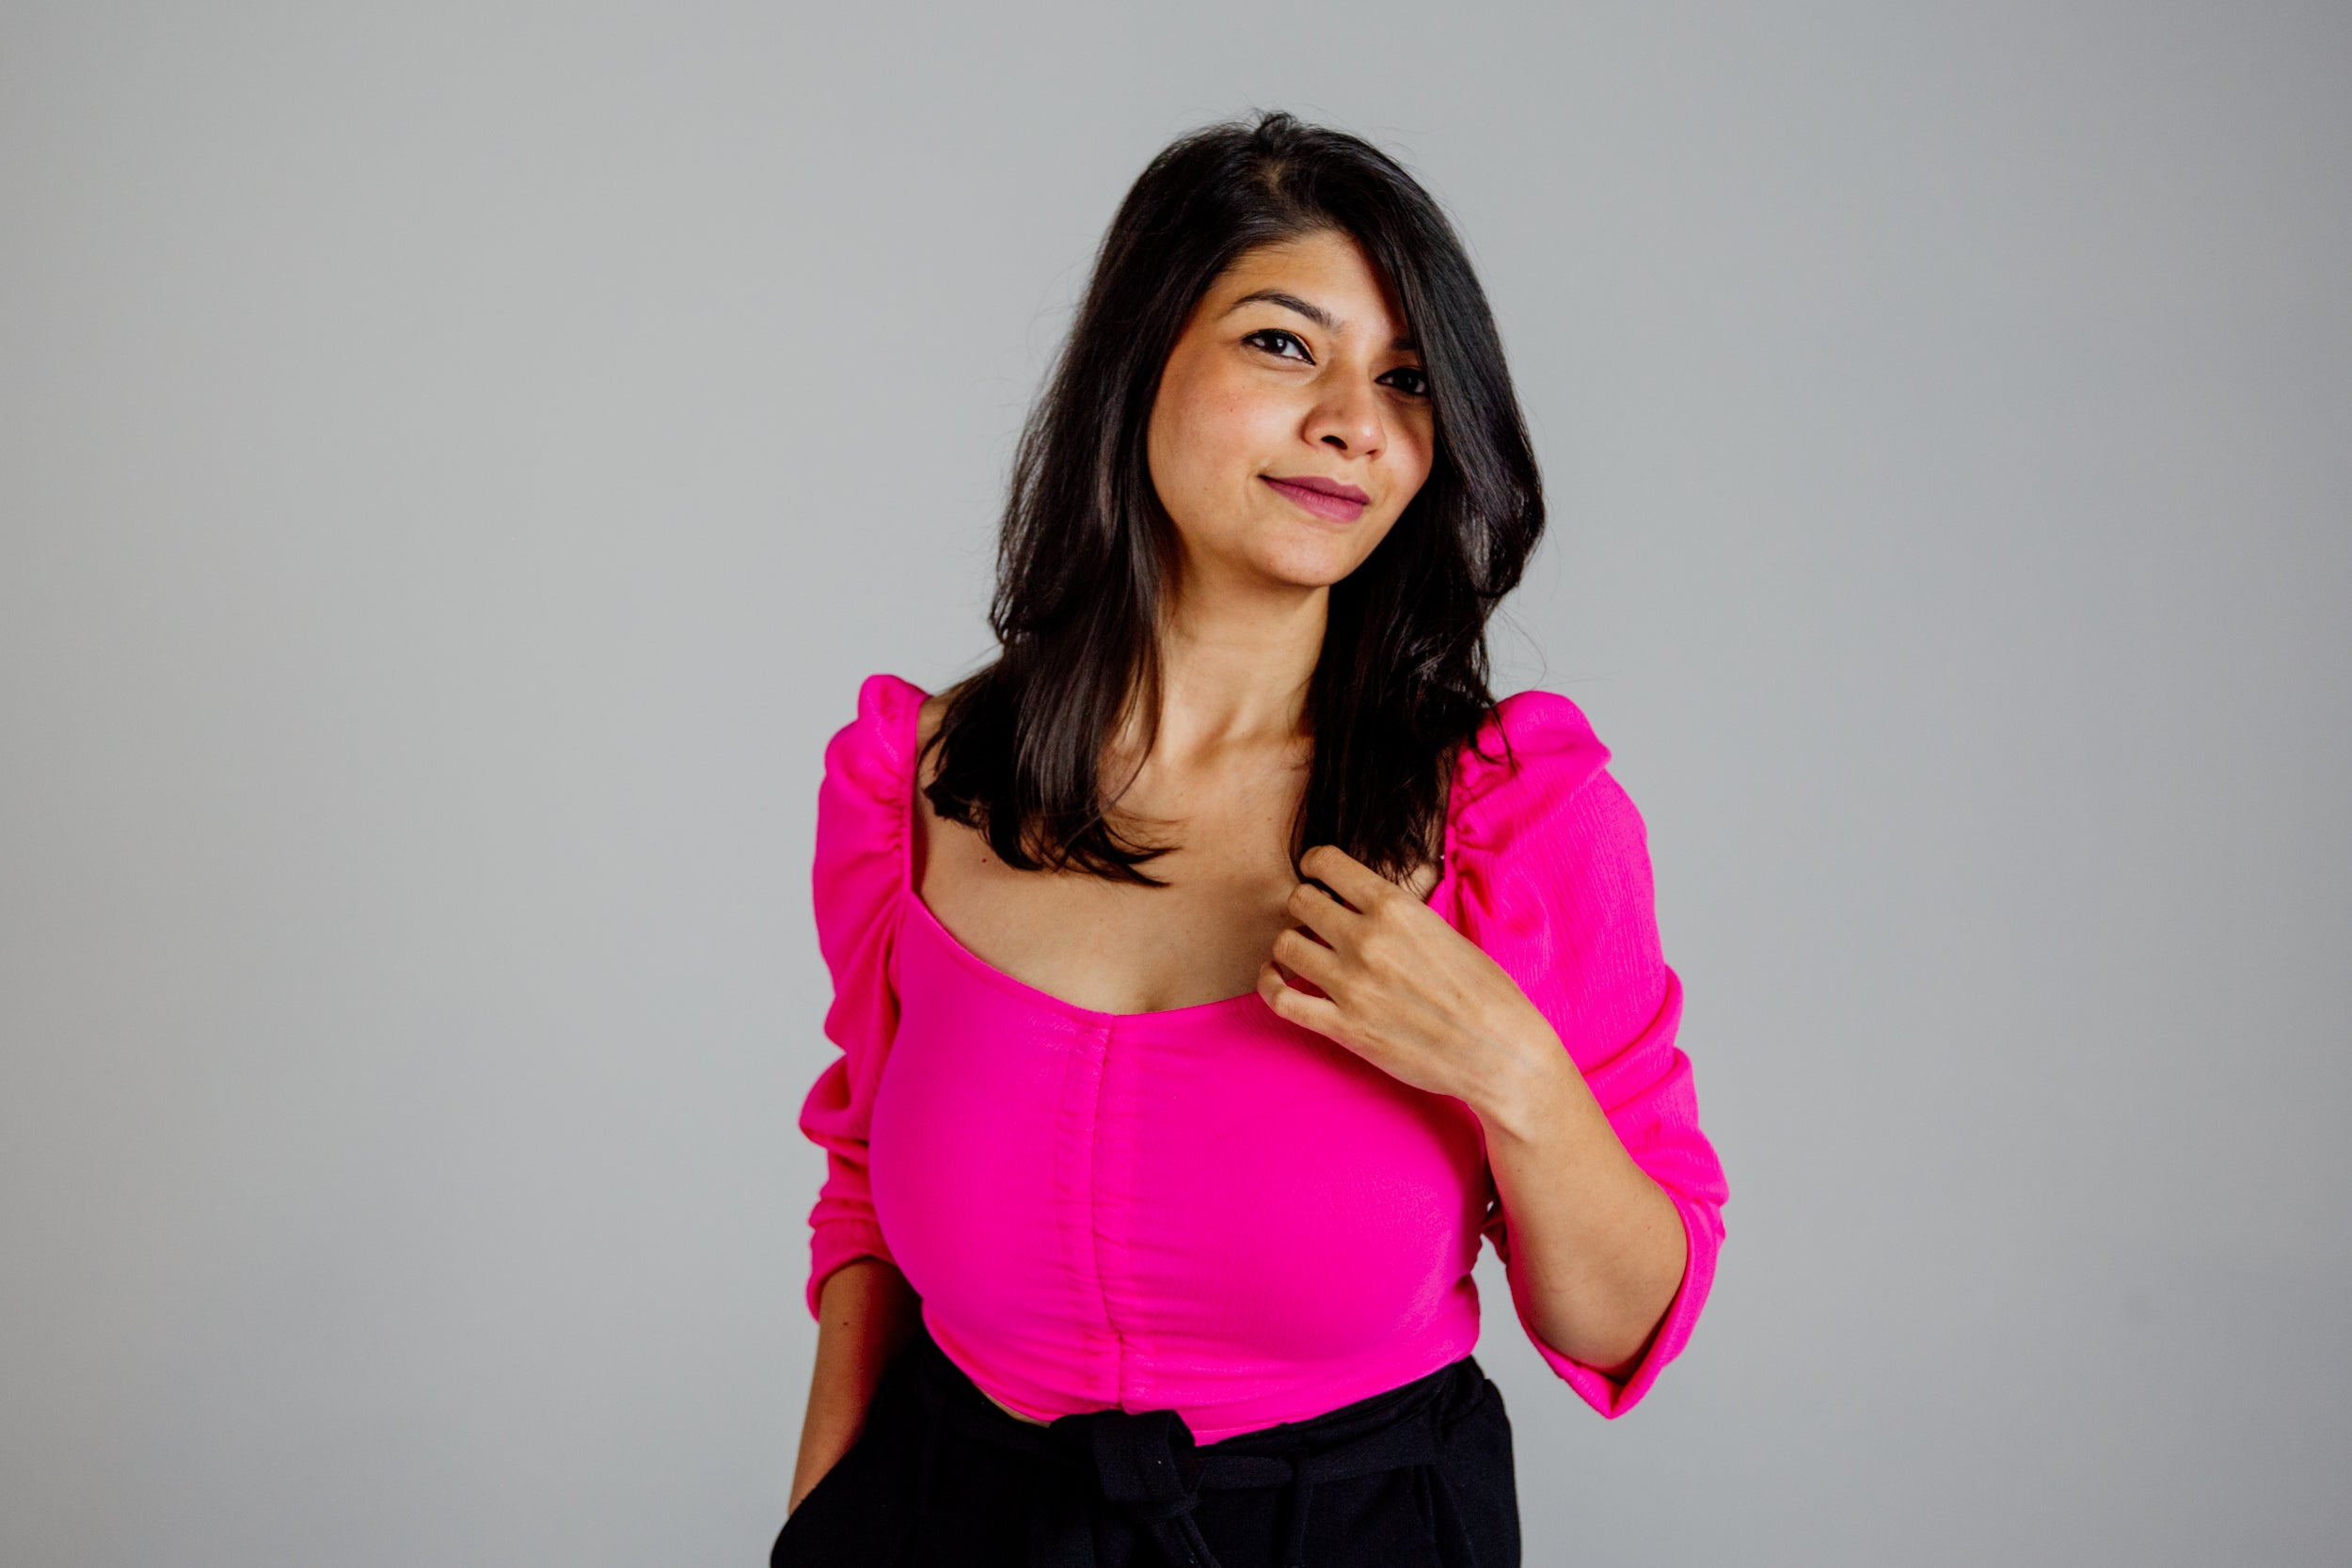 A woman in a pink shirt poses.